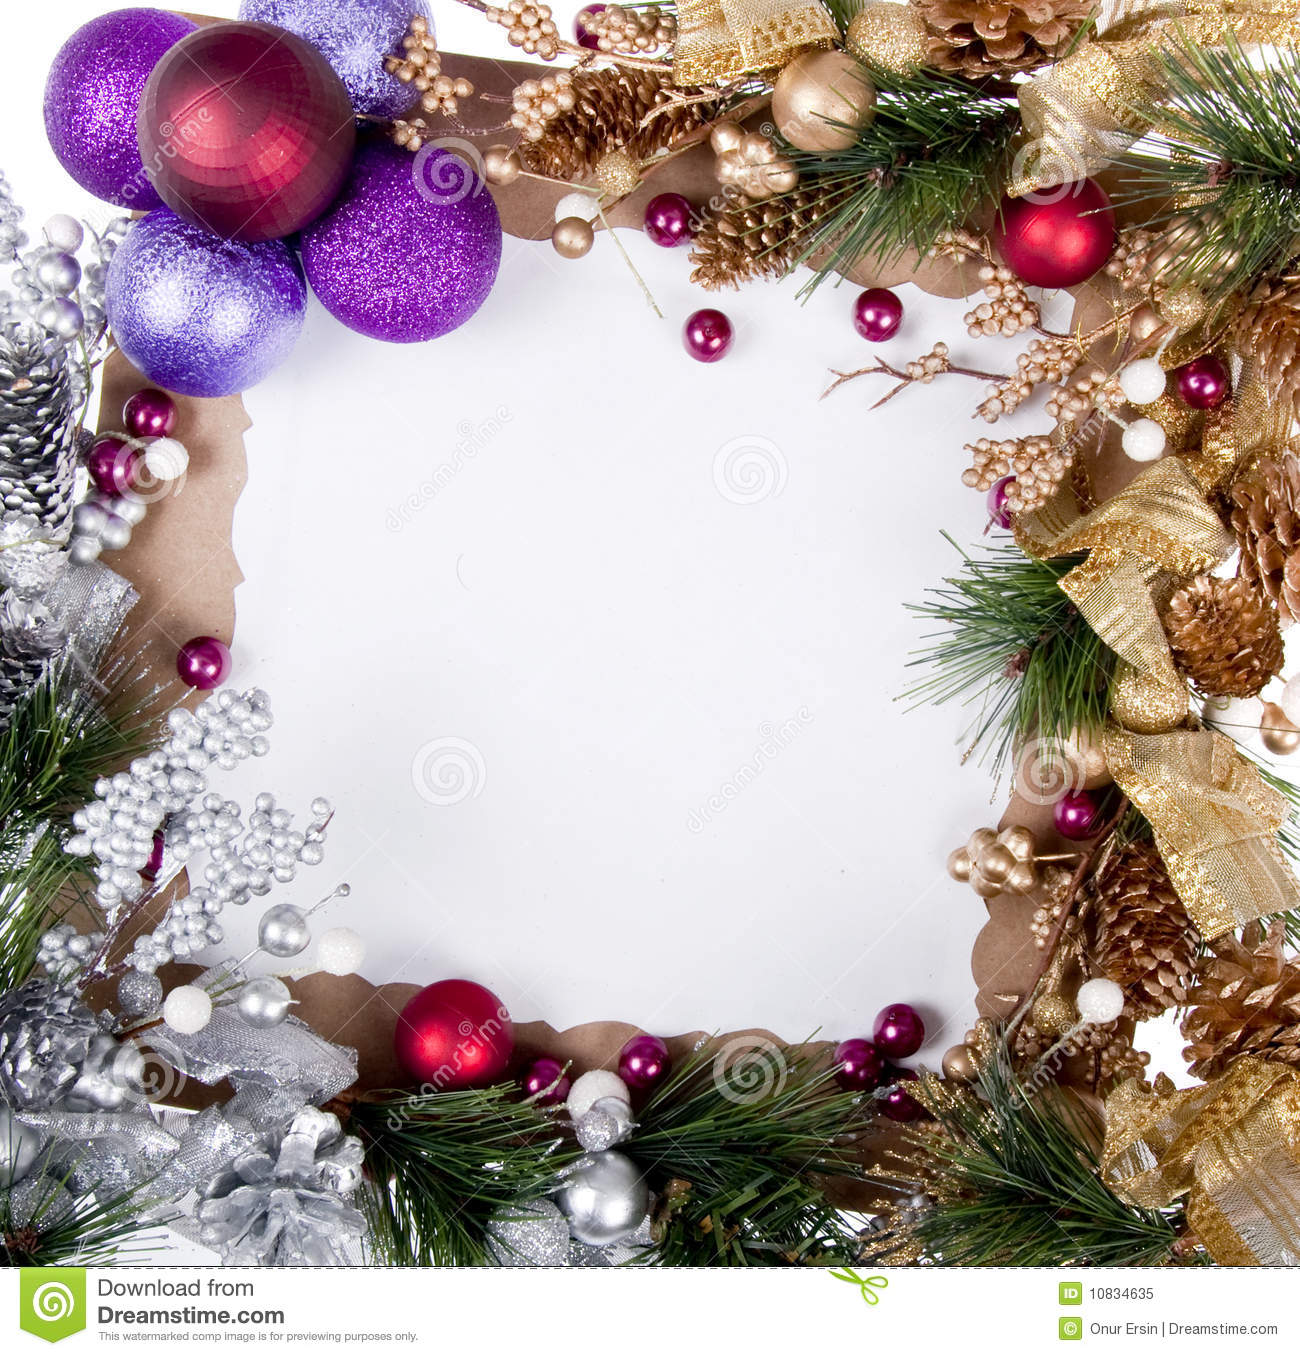 Christmas Card Frame Royalty Free Stock Photo - Image: 10834635